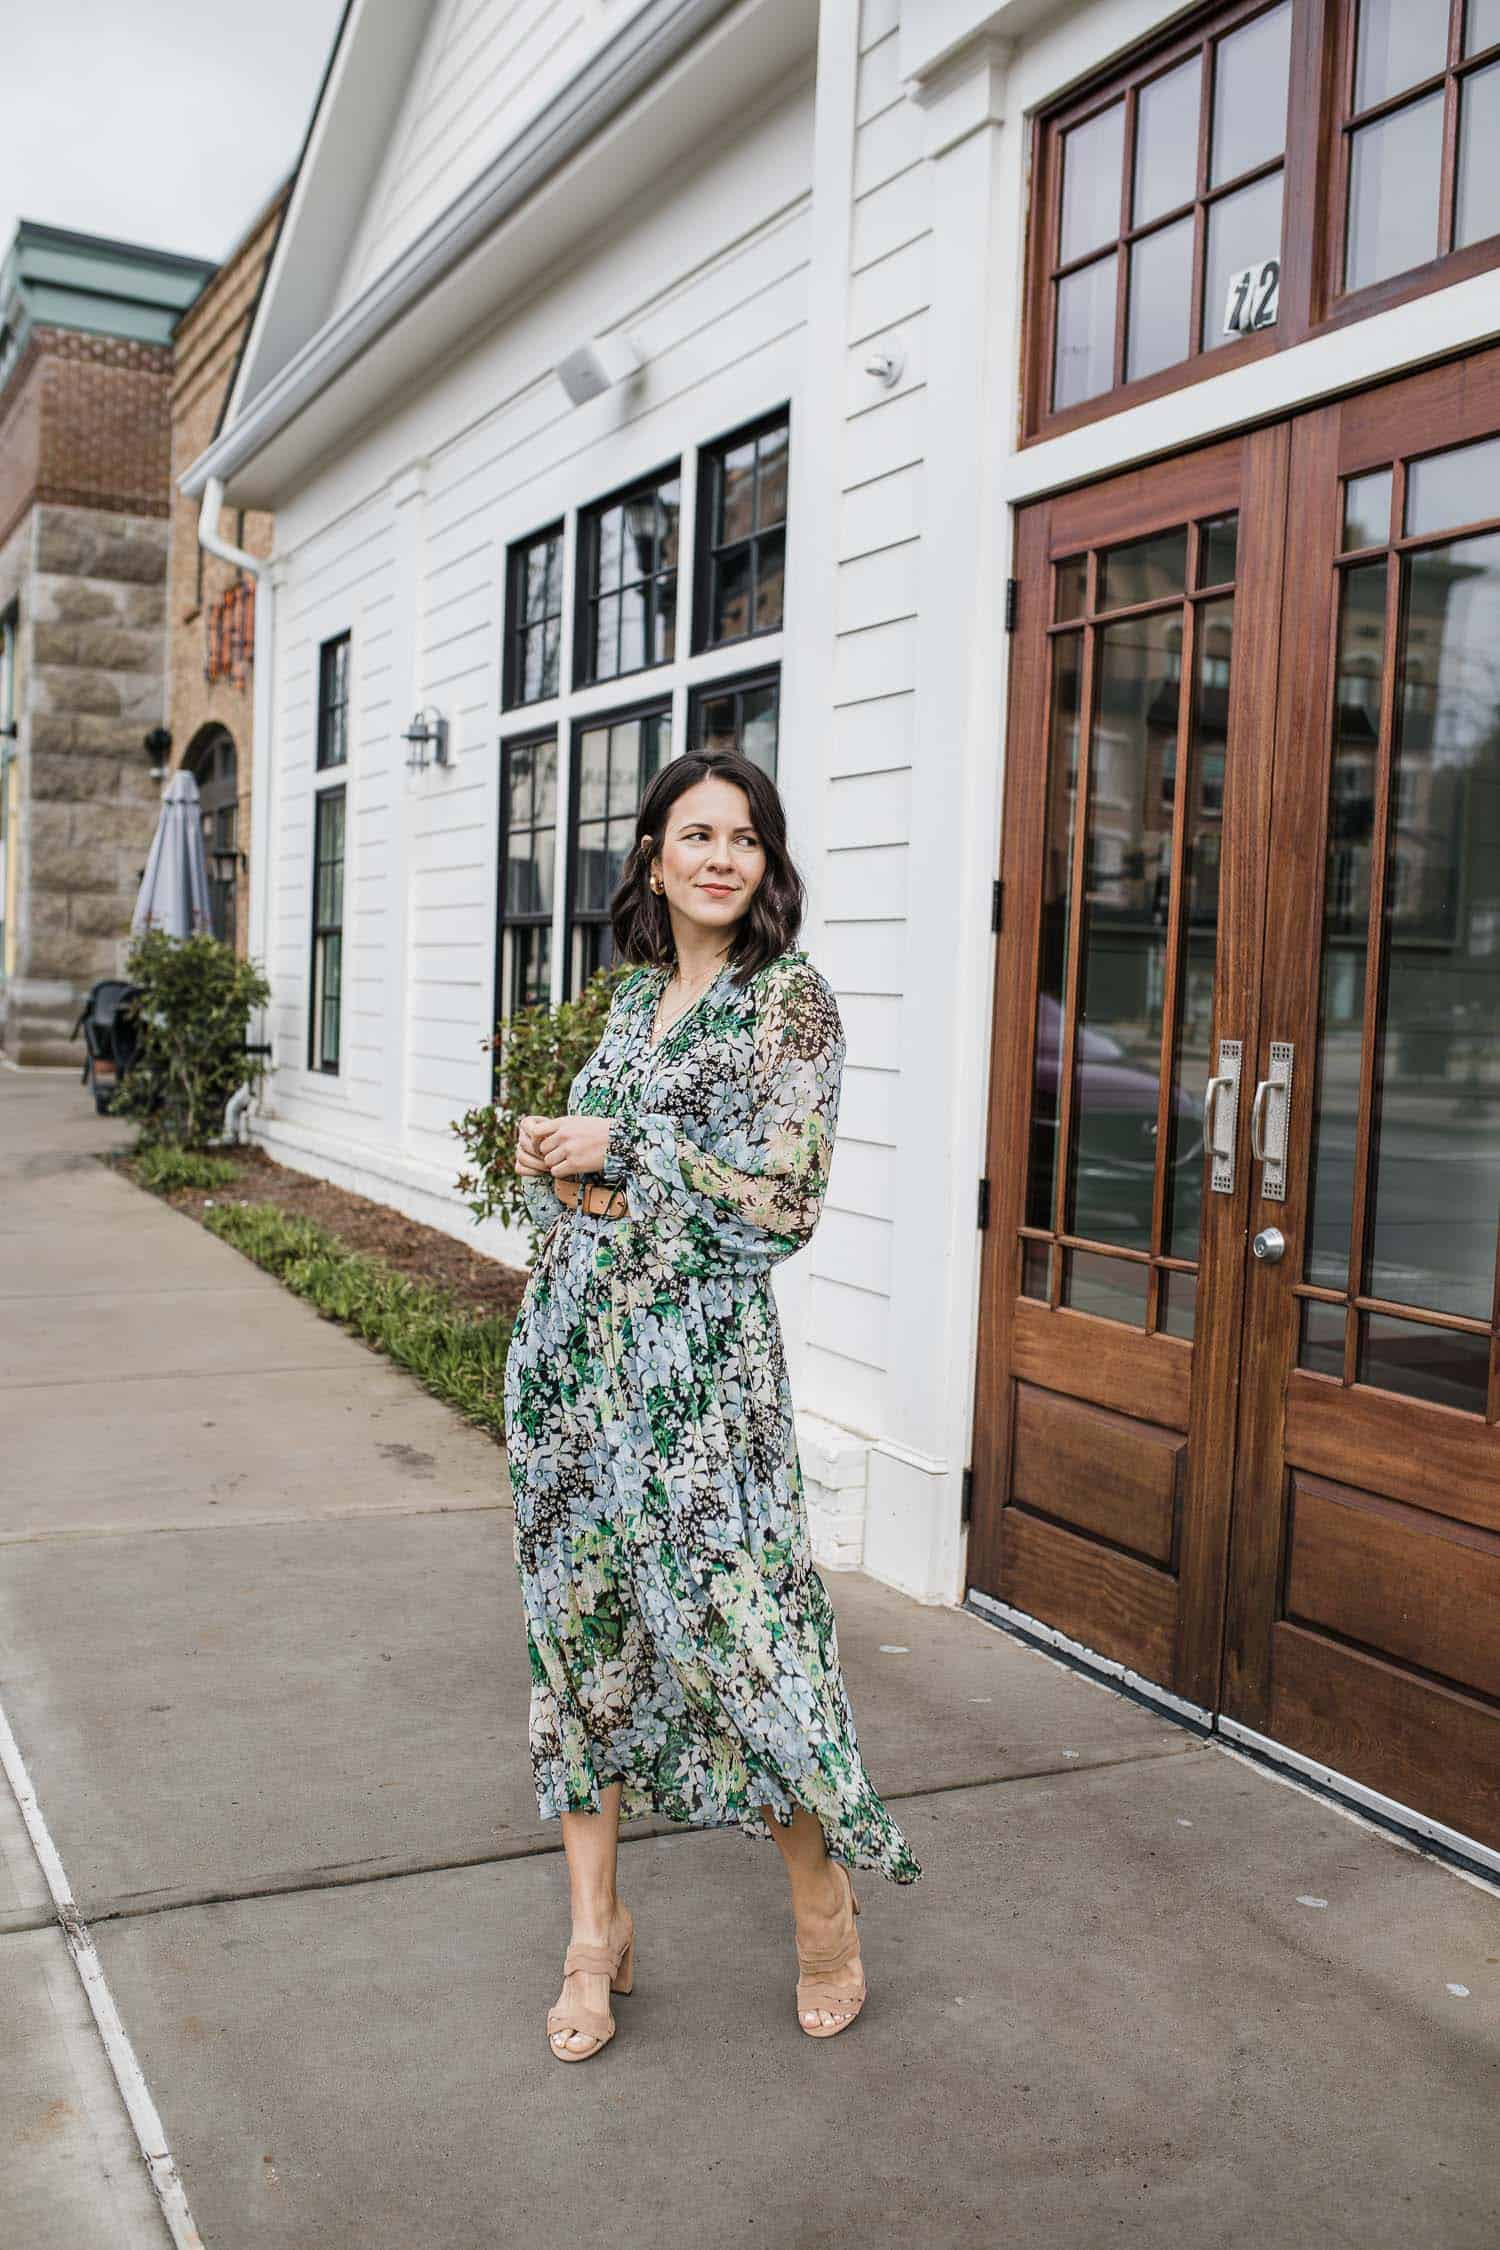 H&M Floral midi dress for summer